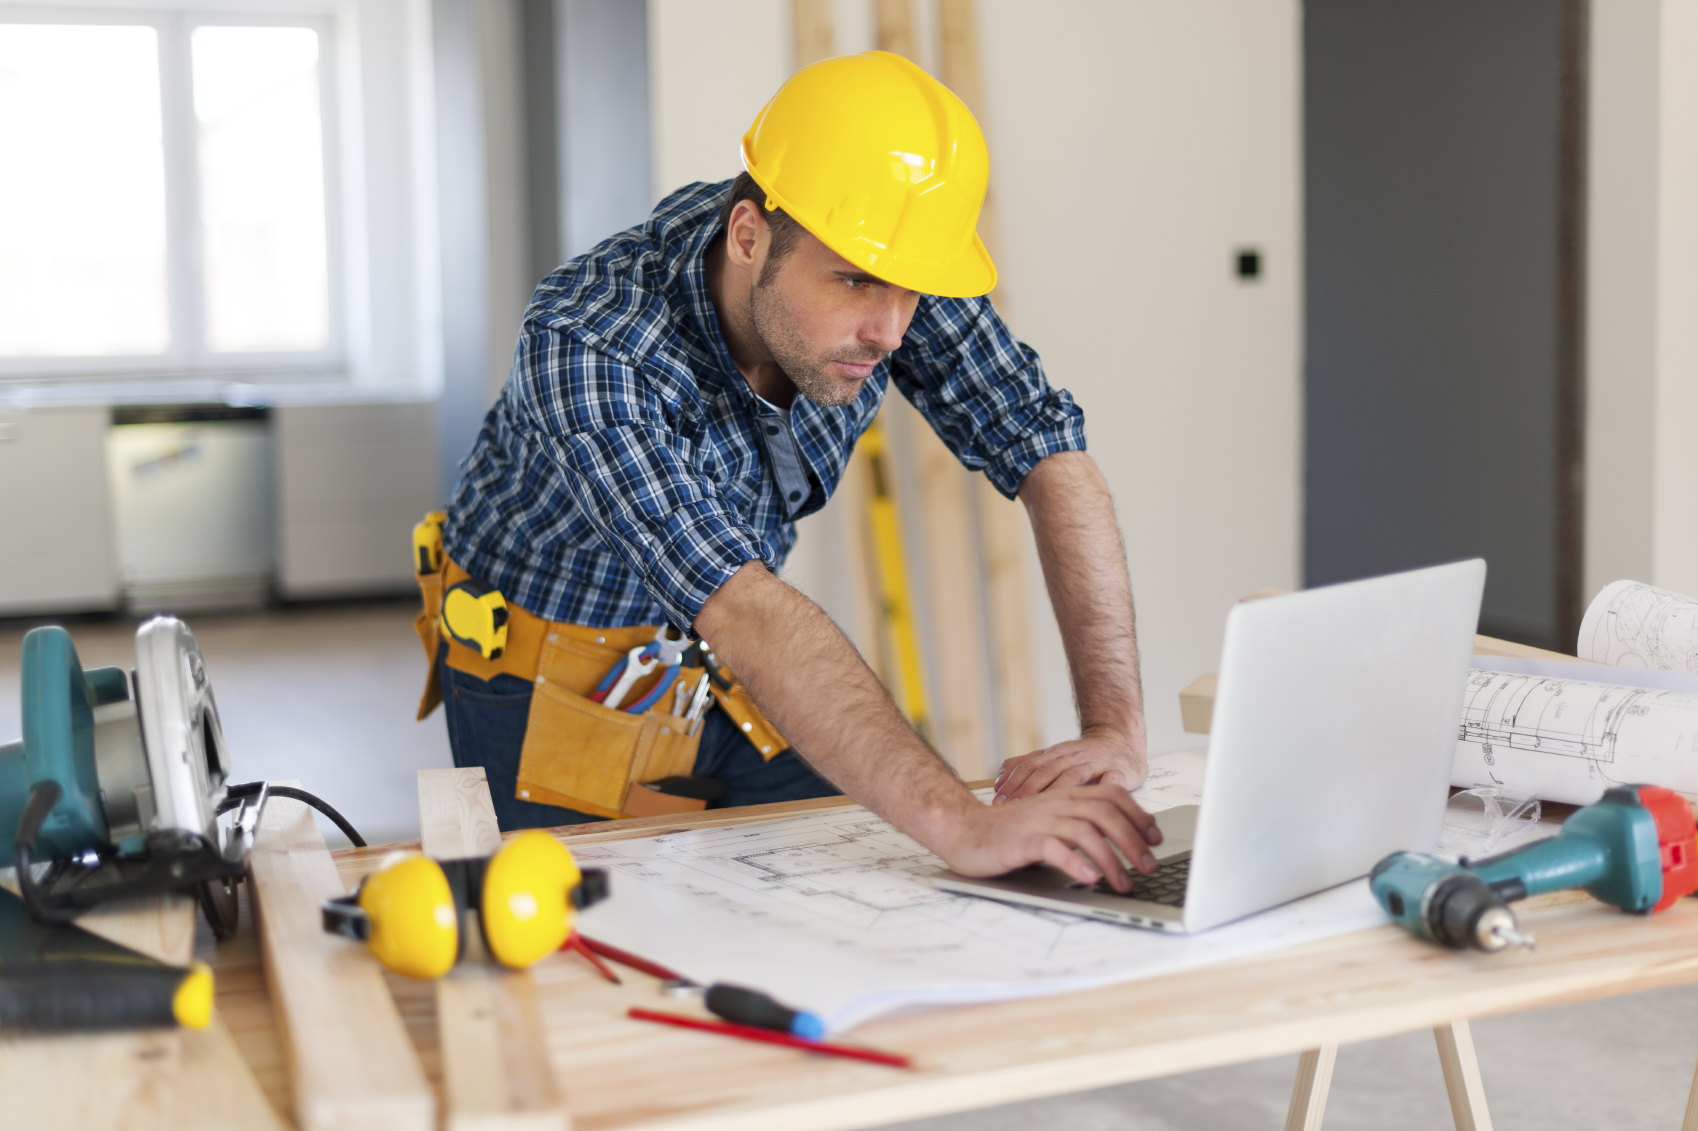 Construction for Contractors needed to build a house